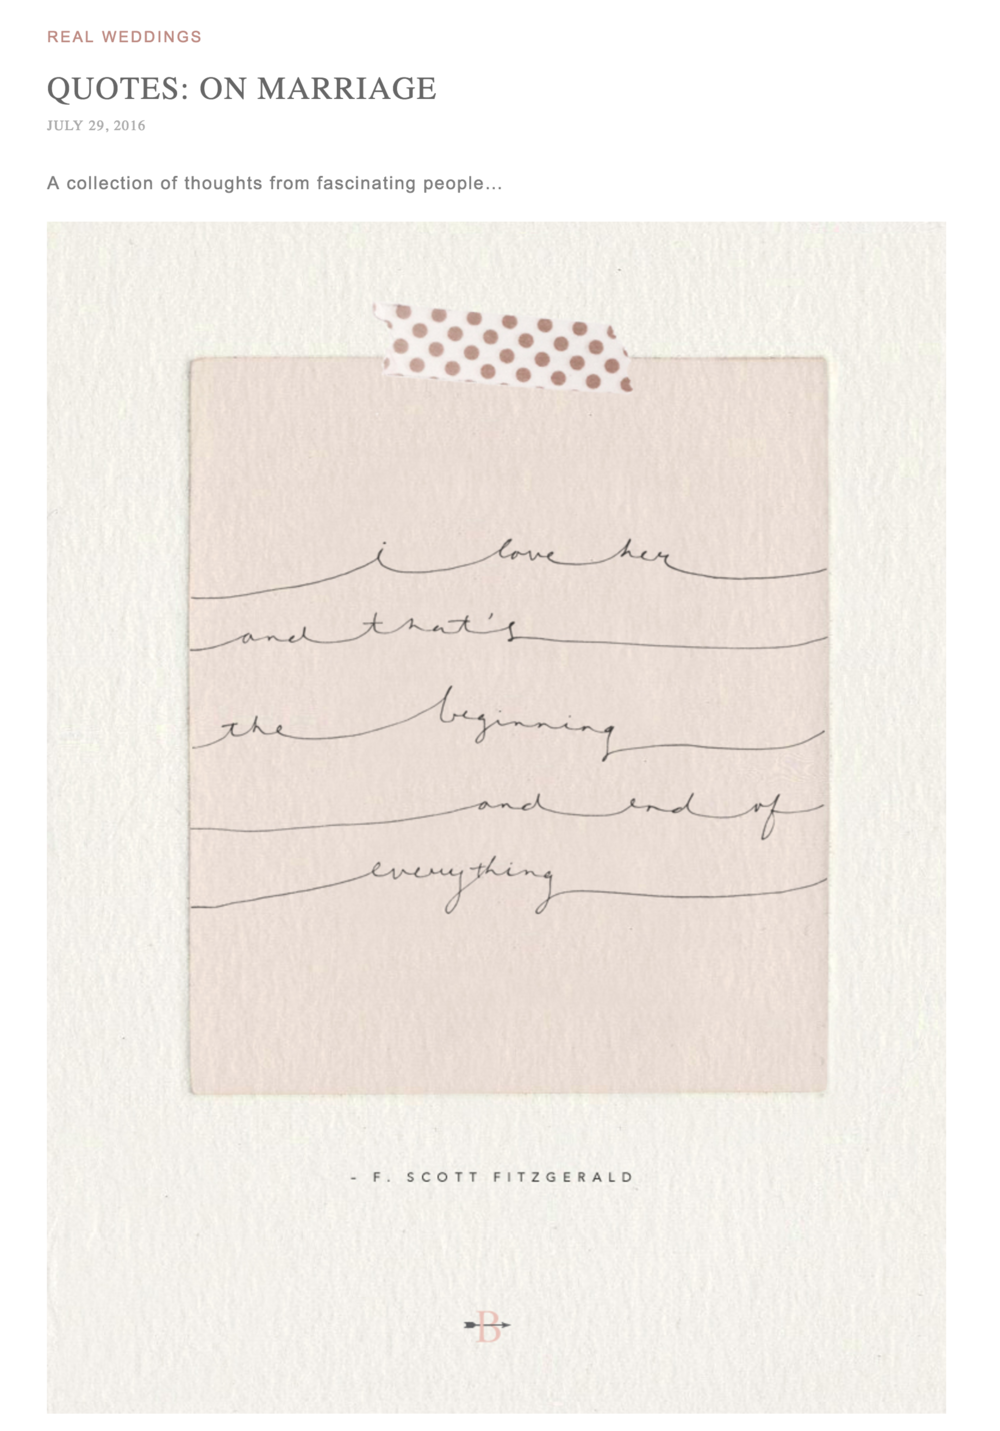 Marriage Quotes from Fascinating People   BHLDN.png